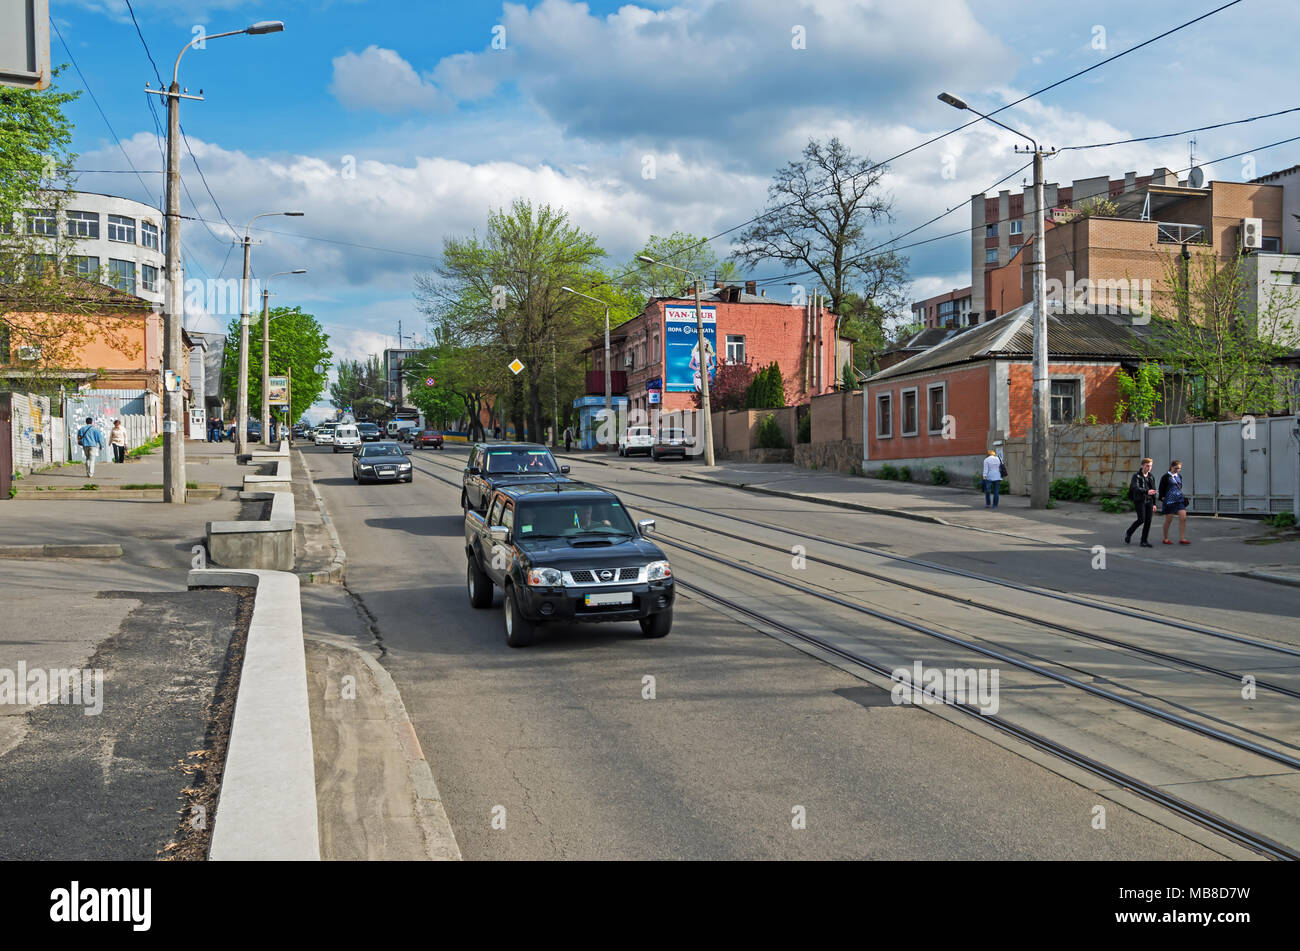 Dnipro, Ukraine - April 19, 2016: Small city street with tram tracks in early spring early in the evening - Stock Image